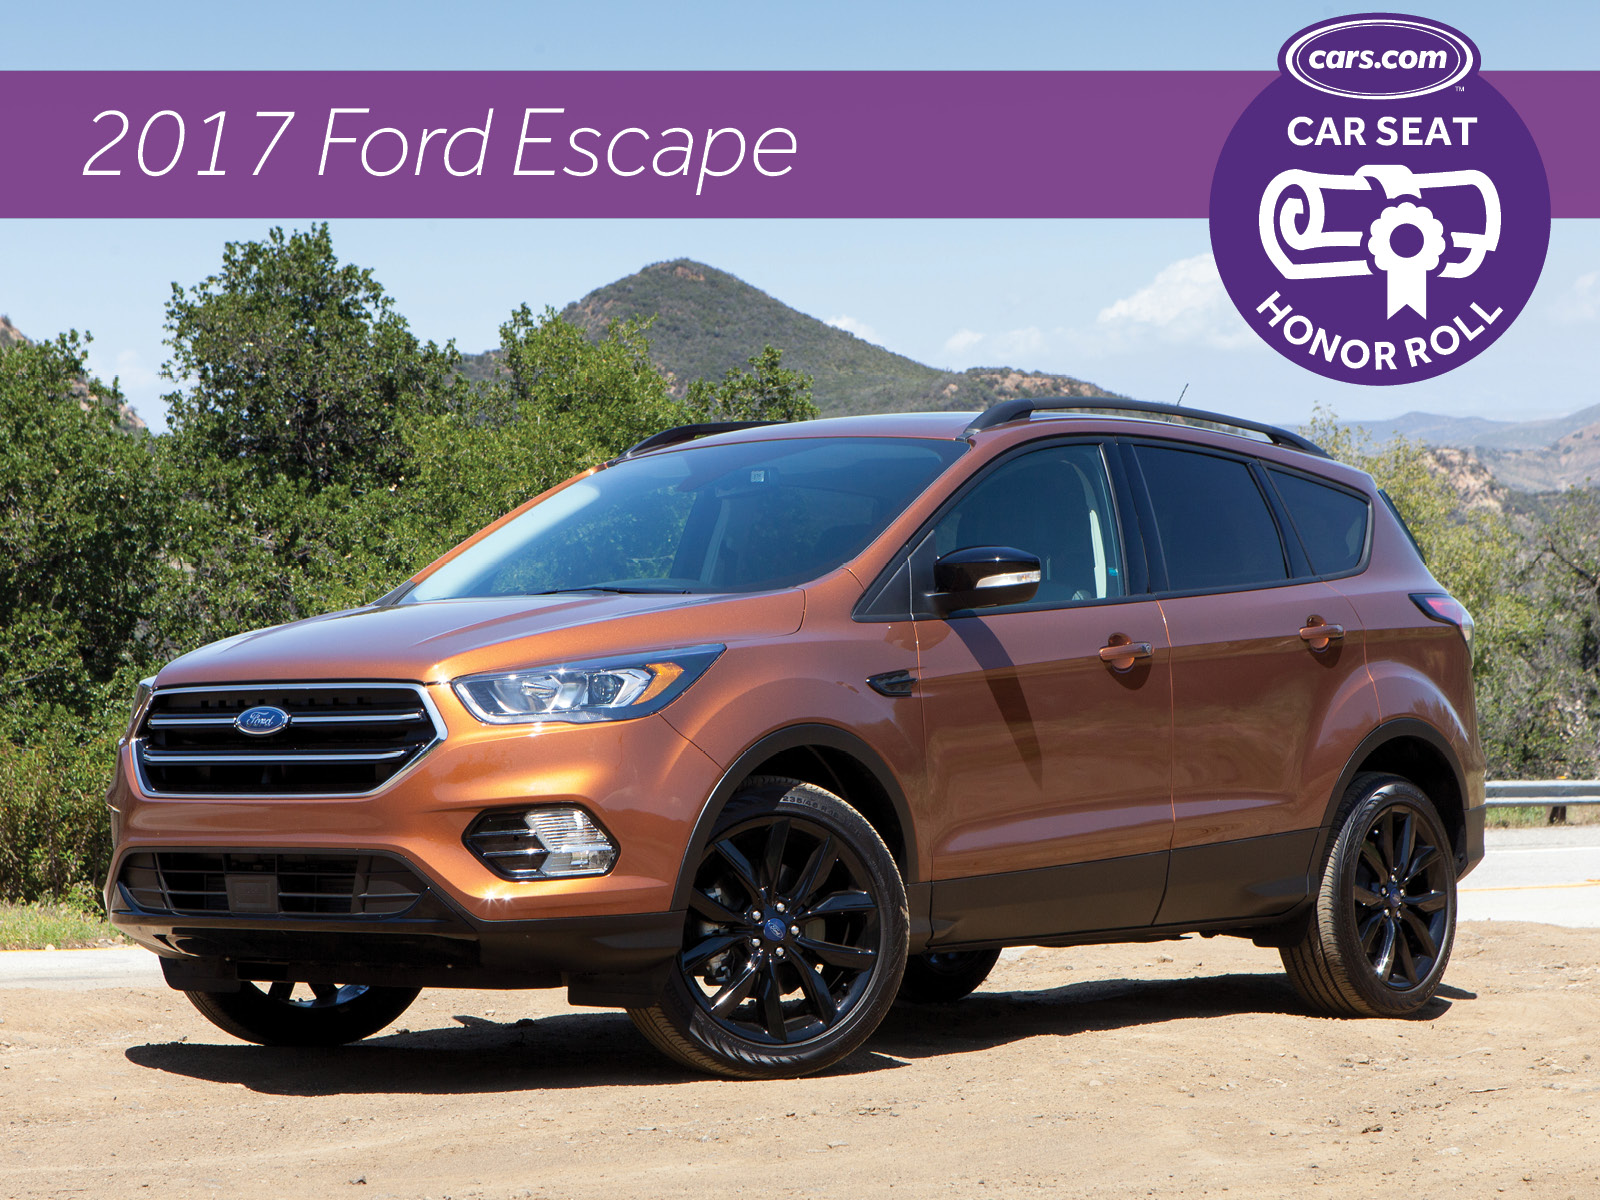 honor-roll-2017-ford-escape